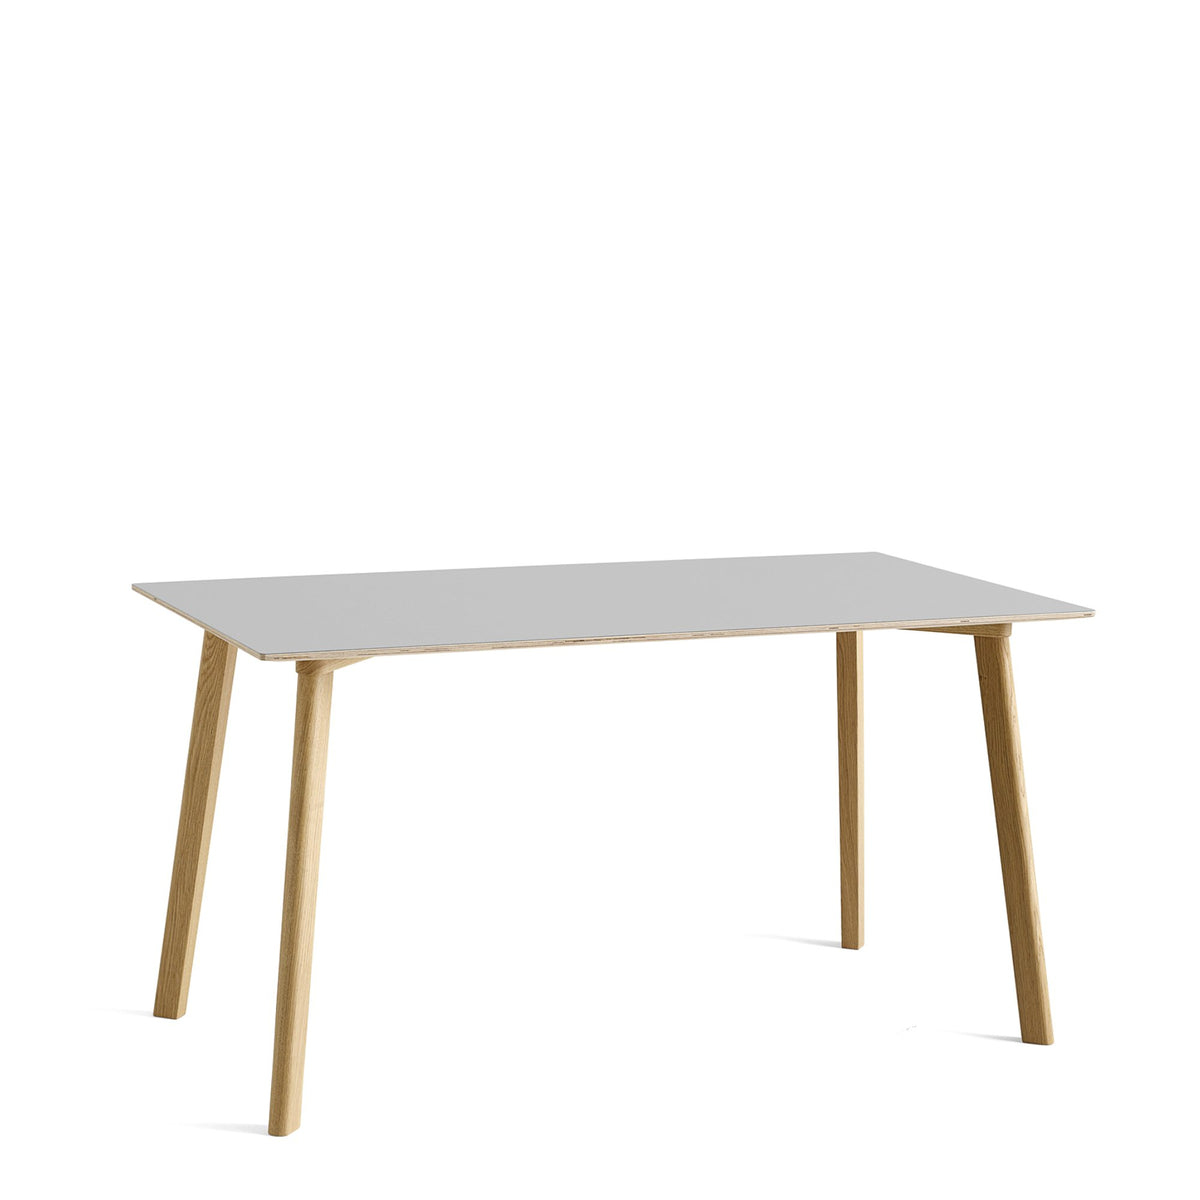 HAY CPH Deux 210 1400mm Dusty Grey 0725 with Matt Lacquered Oak Base